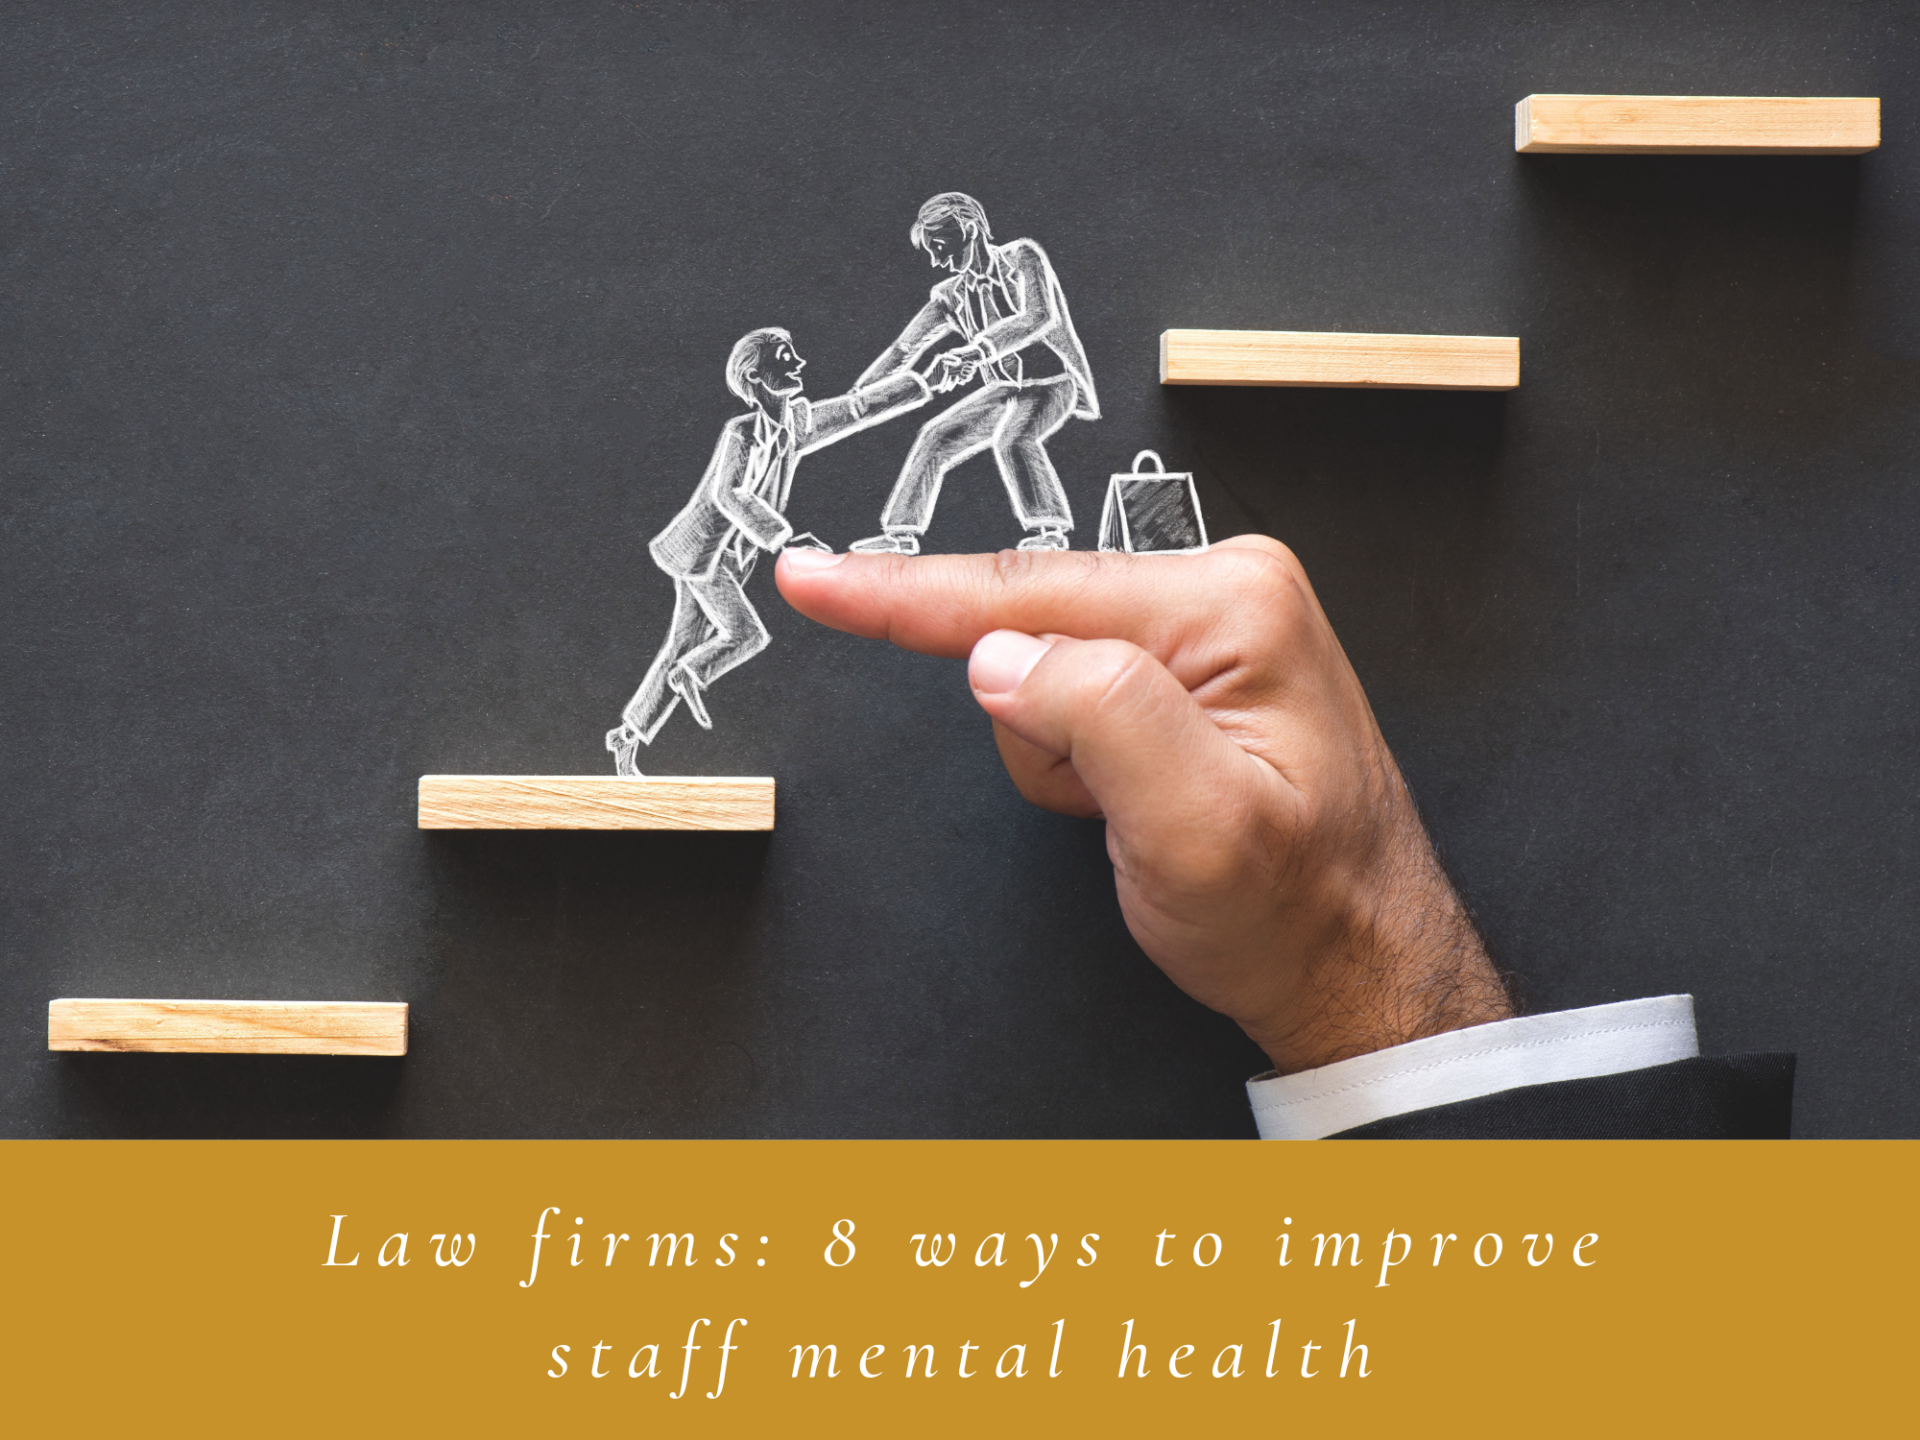 8 ways to improve staff mental health in law firms